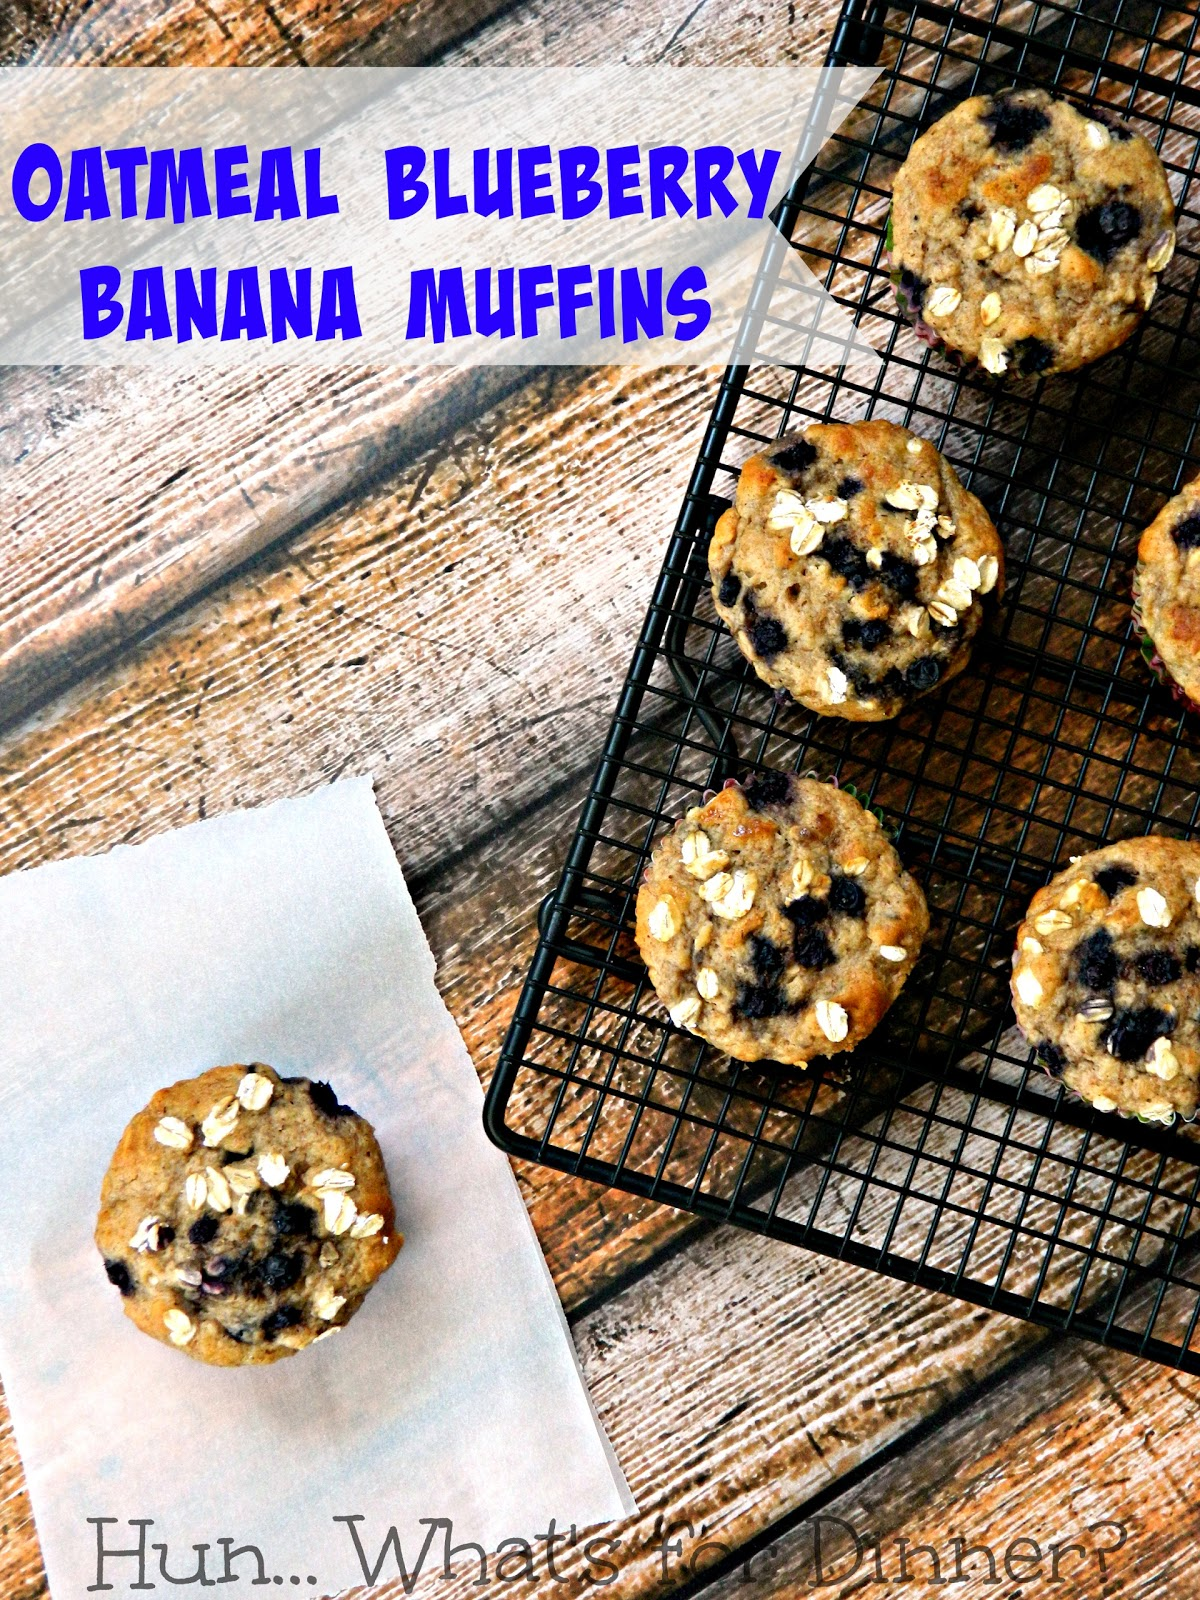 Oatmeal blueberry banana muffins, using raw honey